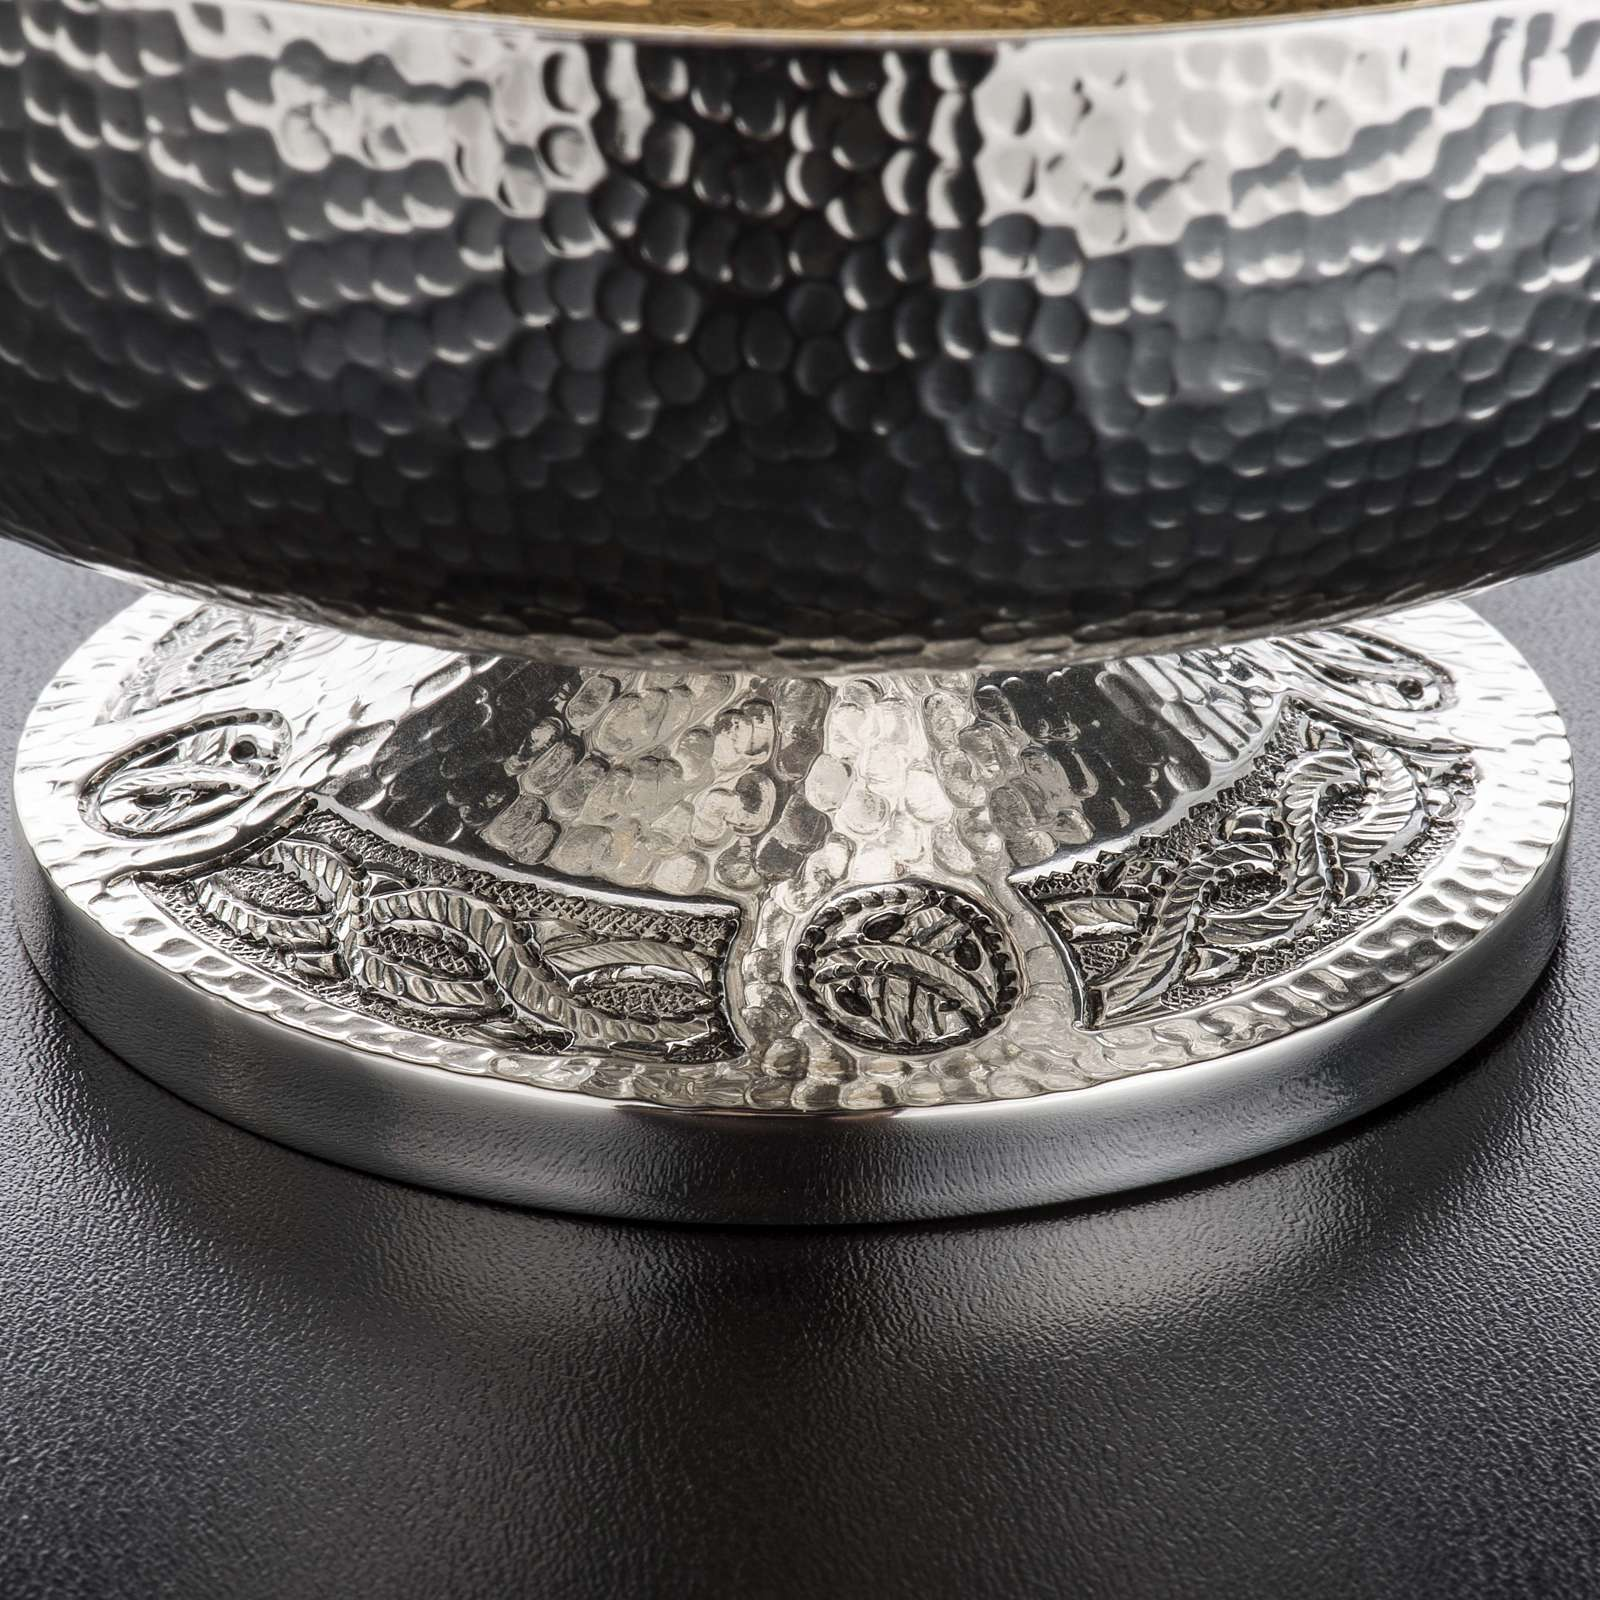 Chalice and paten 4